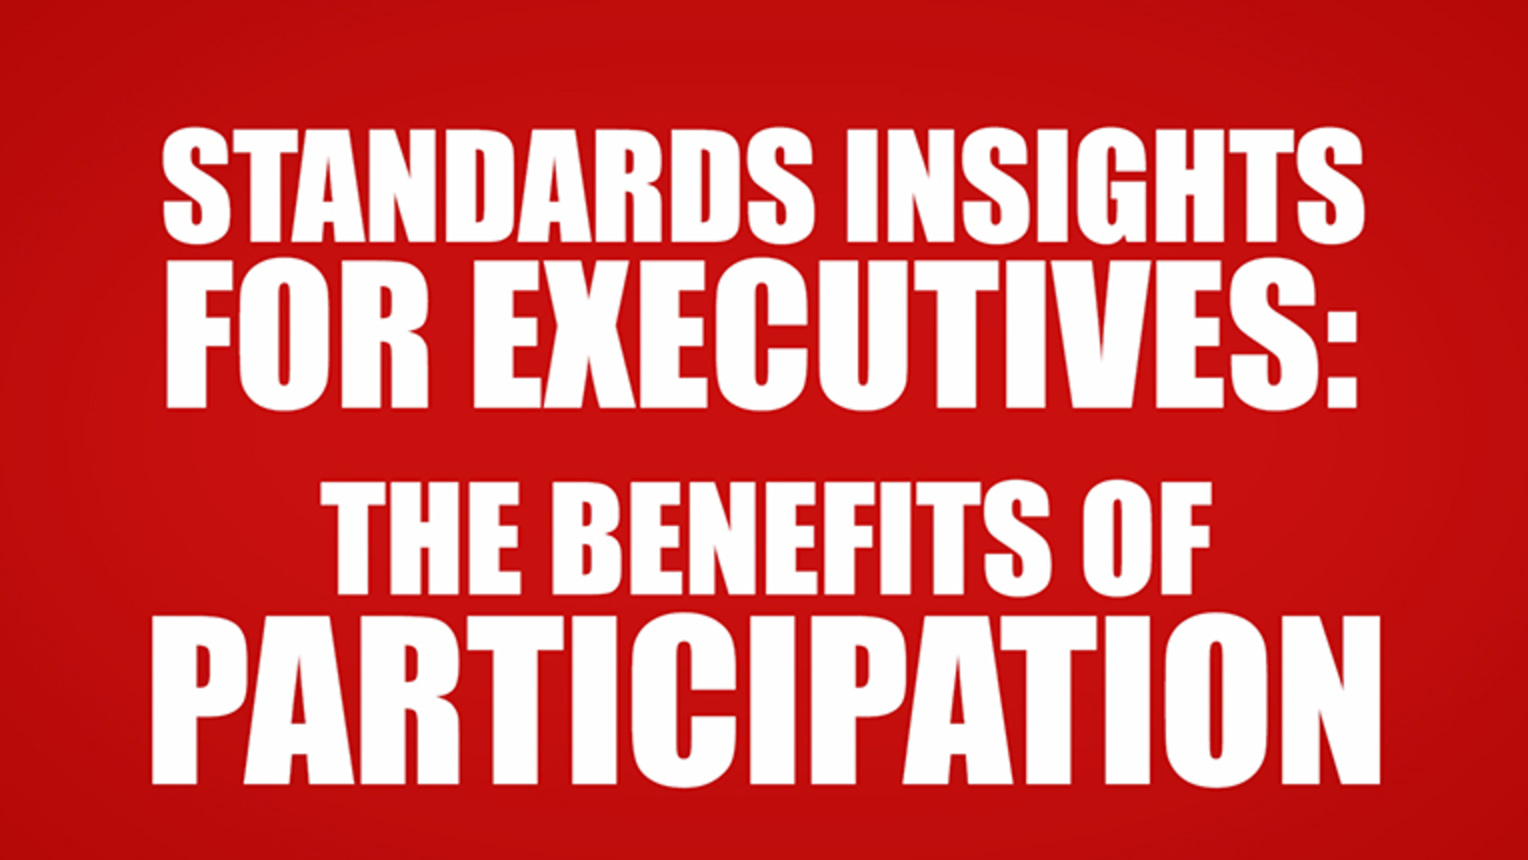 Standards Insights for Executives: Benefits of Participation